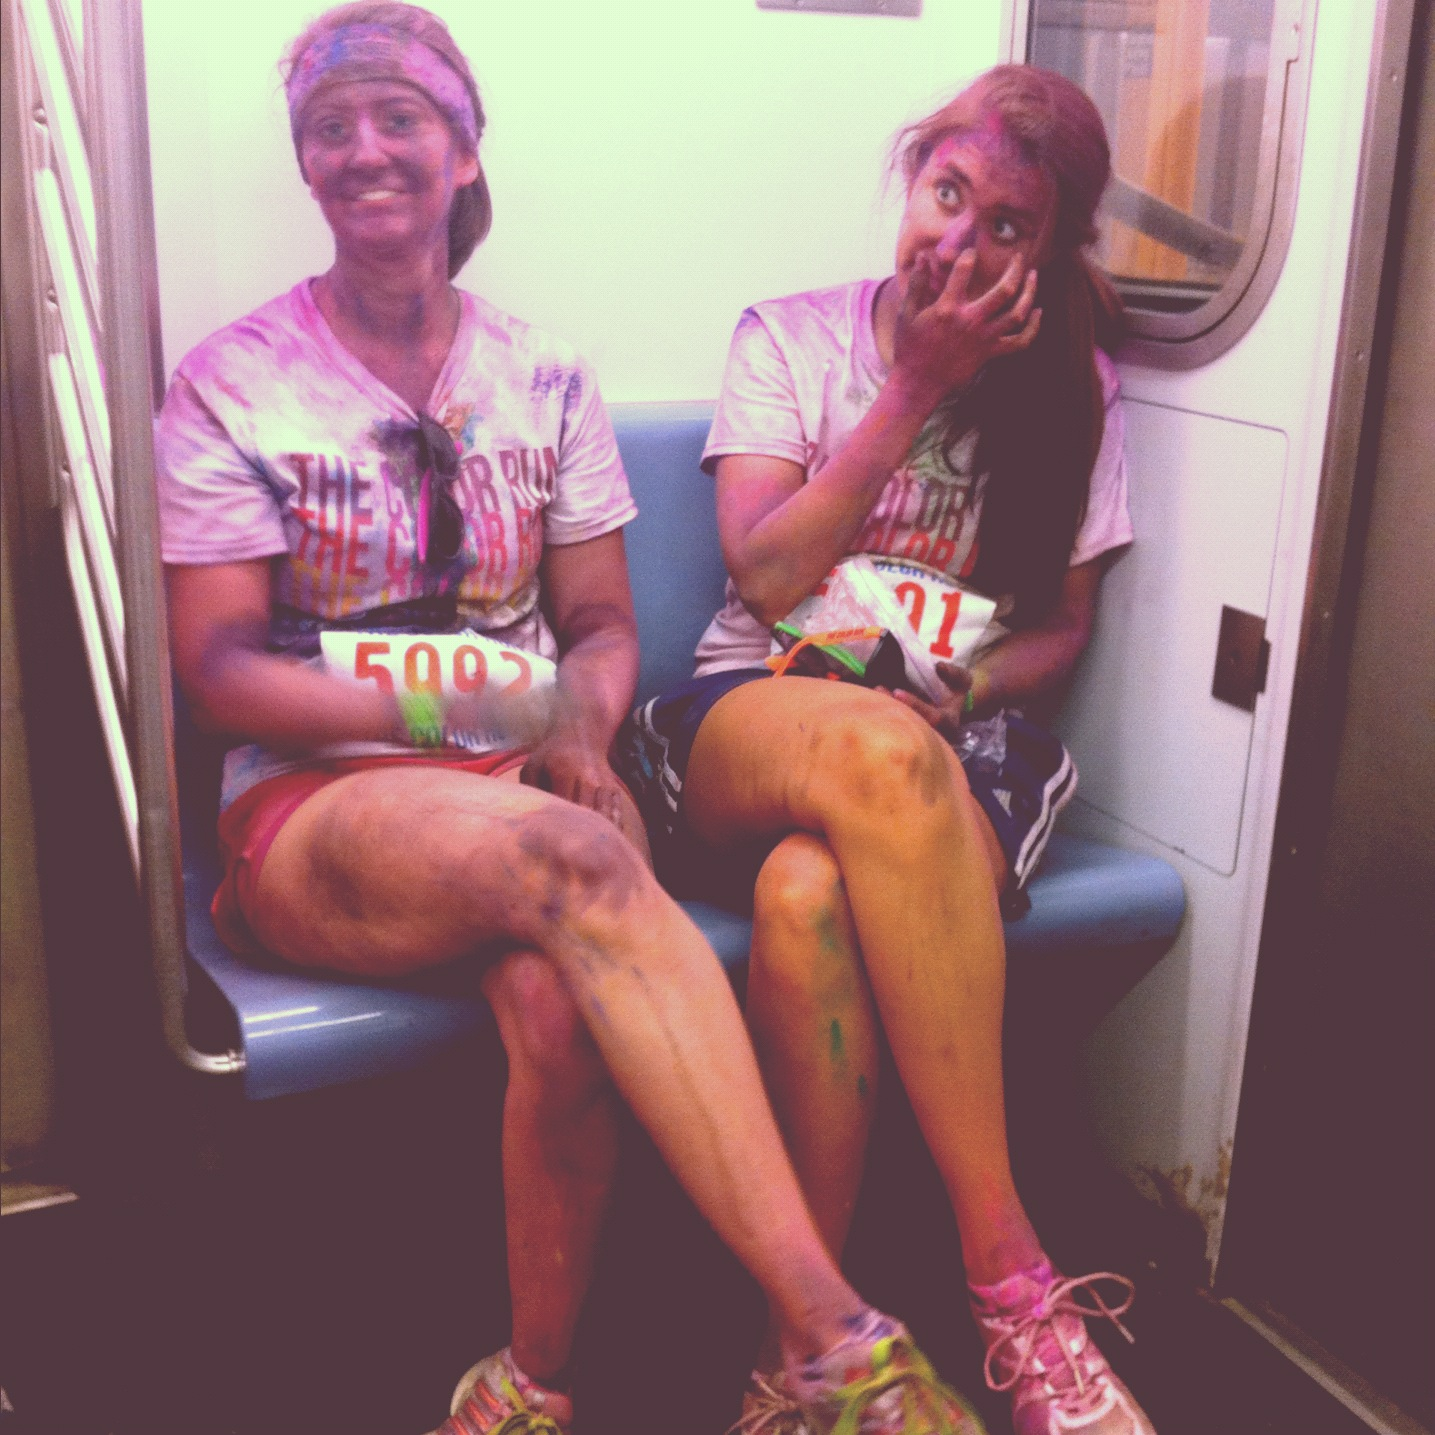 Crazy-People-Painted-Train-Metro